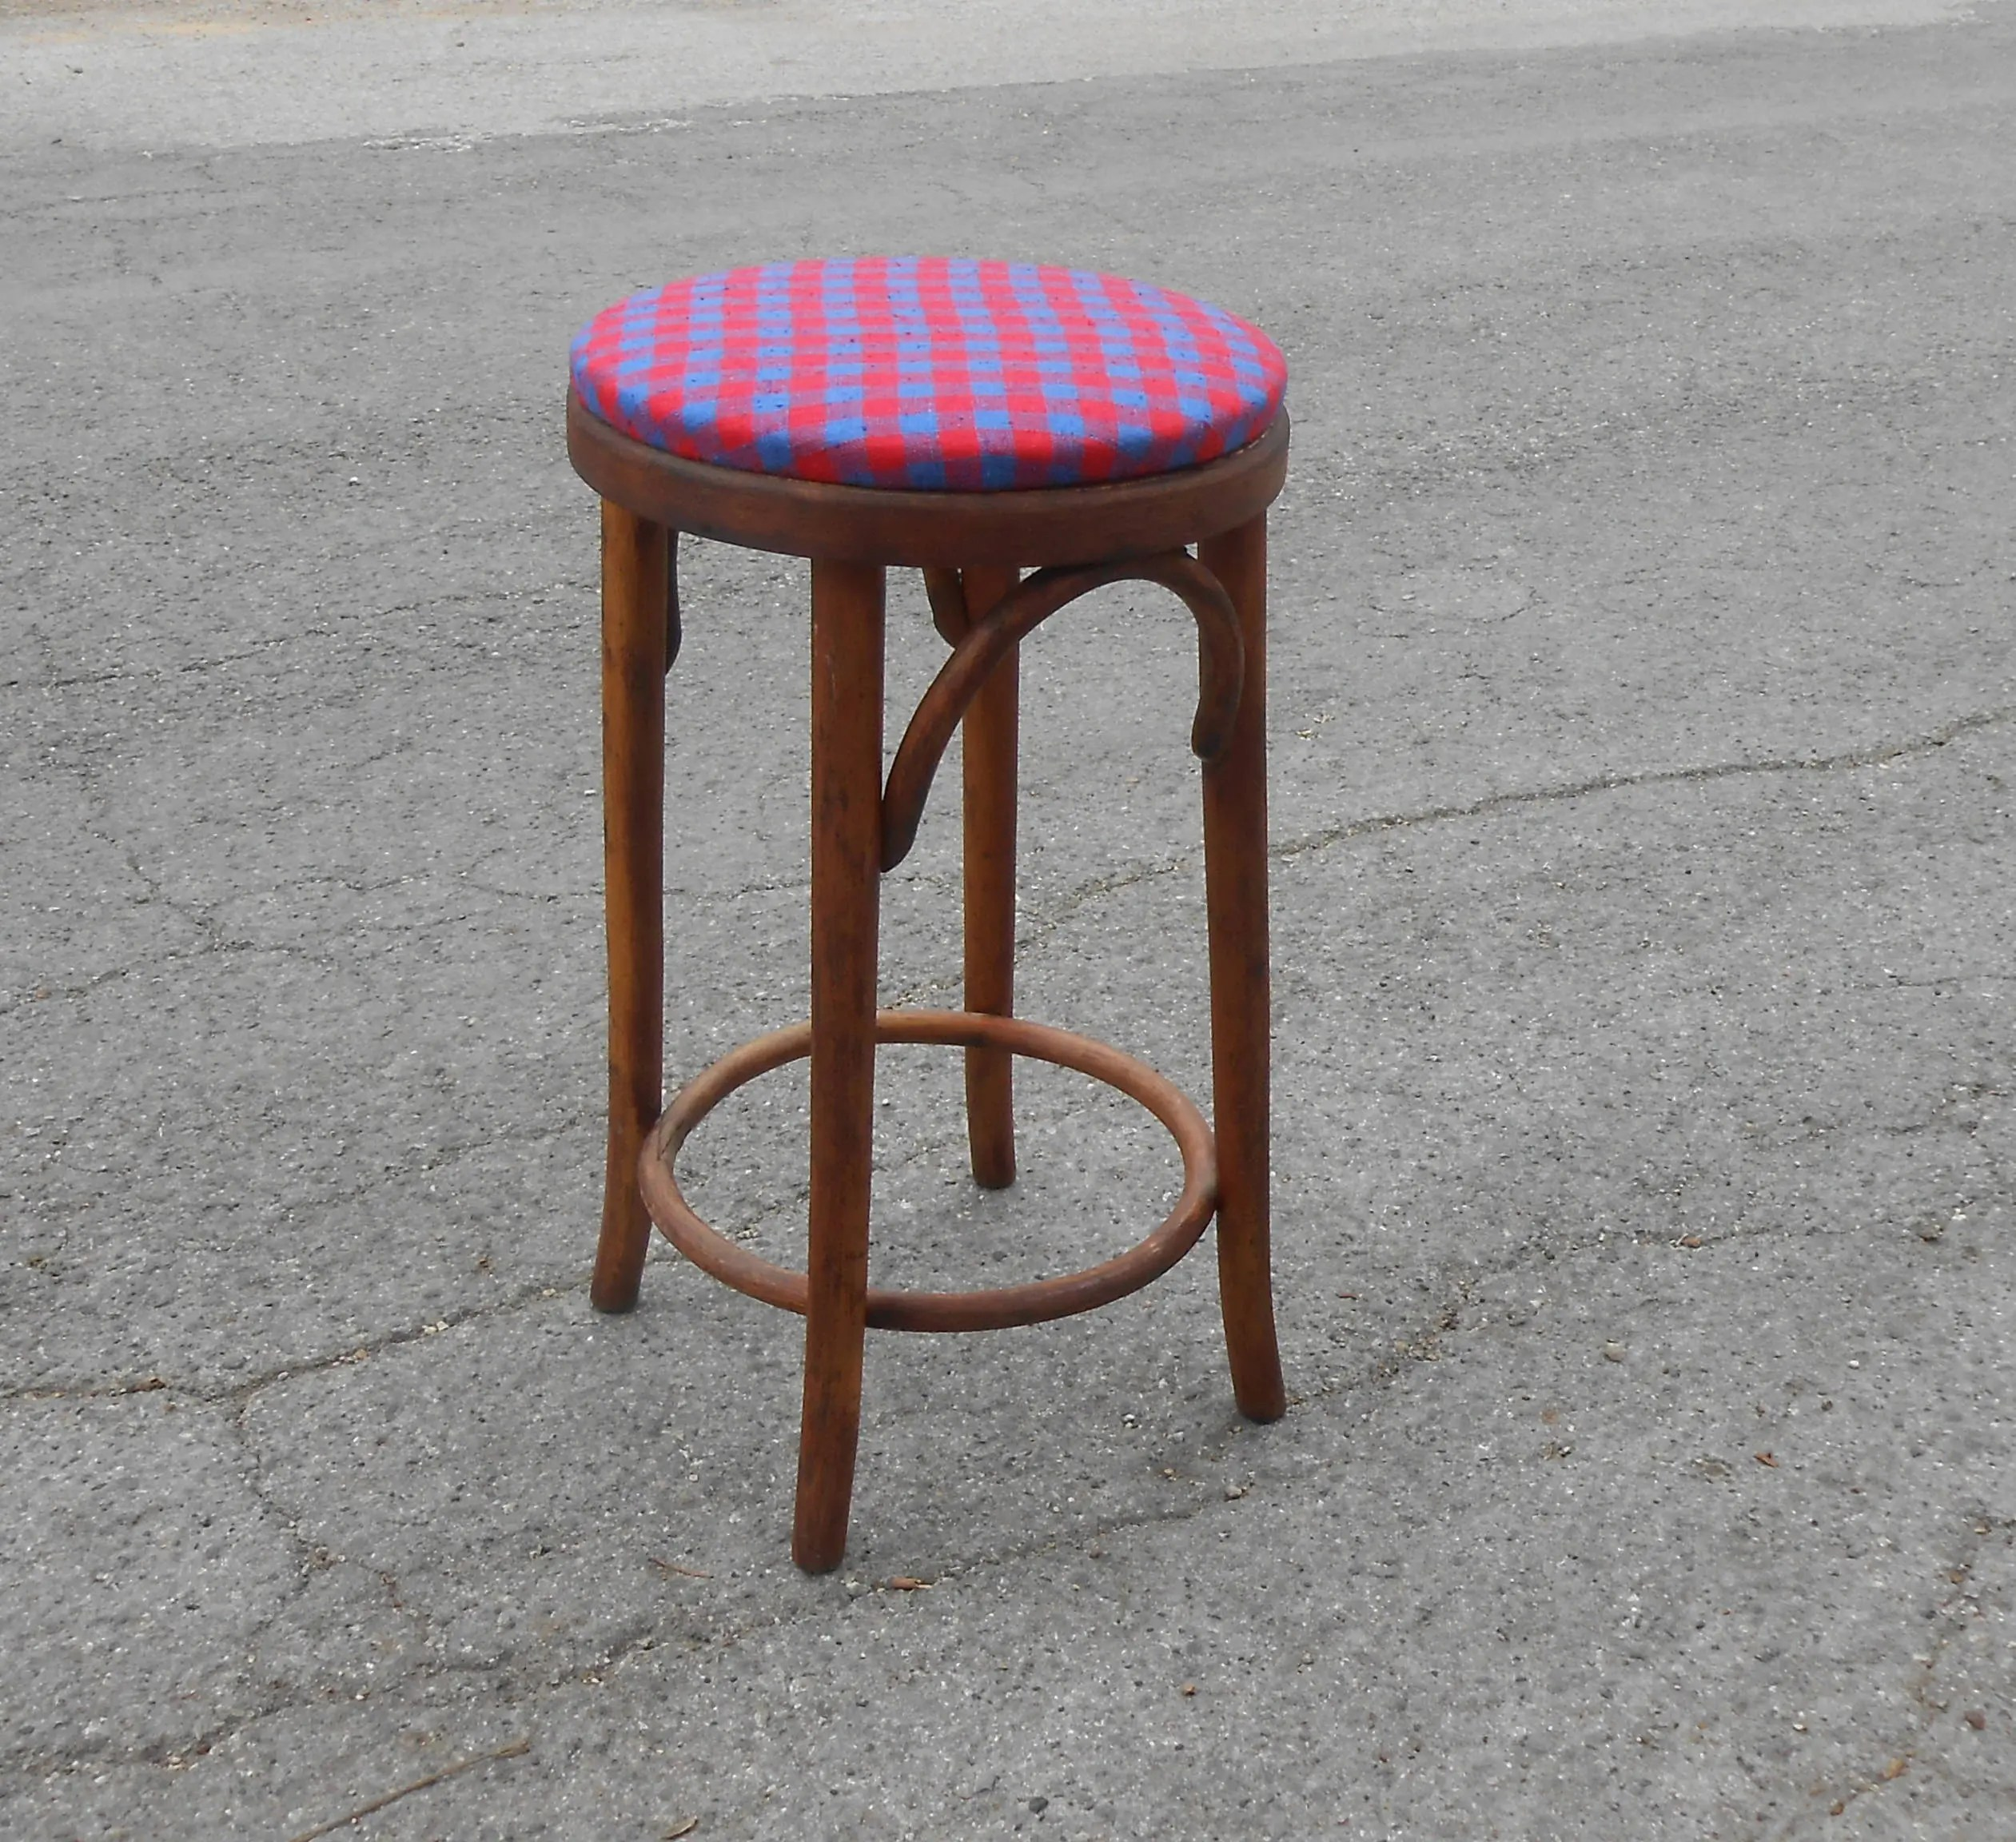 Vintage Bentwood Bar Kitchen Stool Thonet Style Wooden Seating New  Red Blue Gingham Fabric Upholstery Extra Cafe Thonet Bar Stool E42